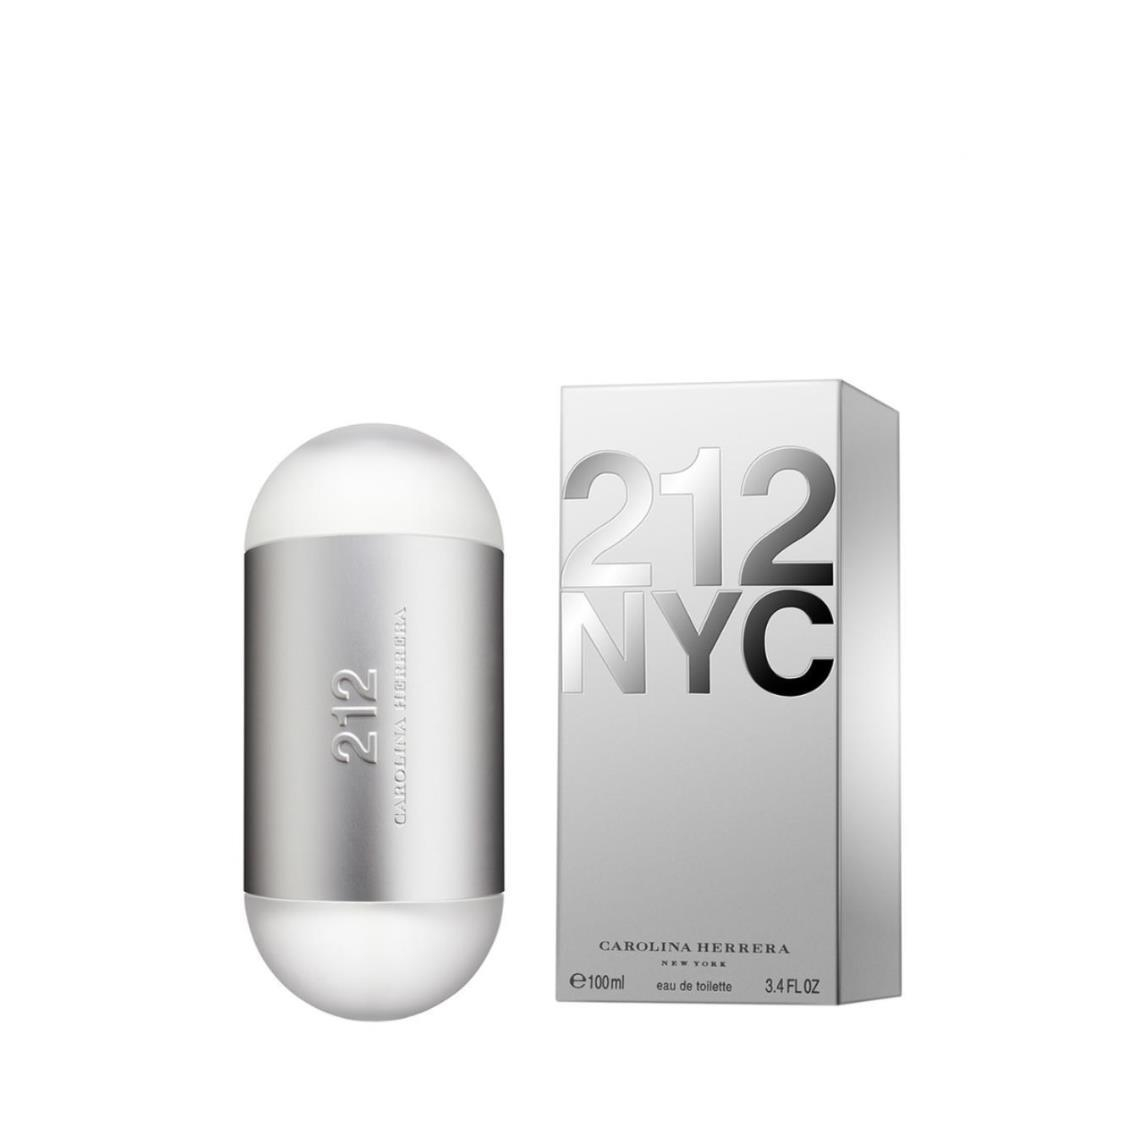 212 NYC EDT 100ml